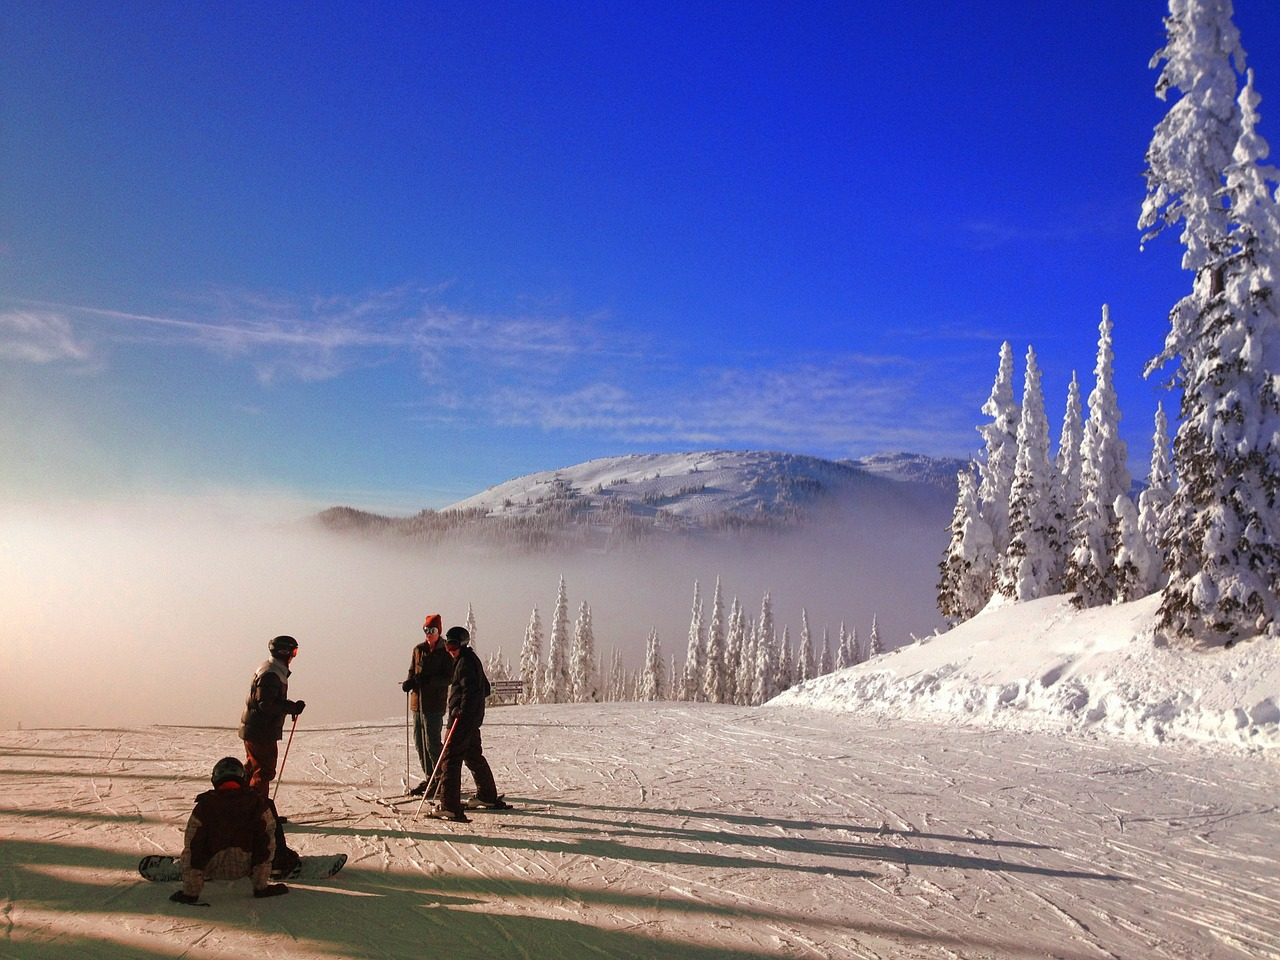 Visit Canada What To See Do In Canada Travel Guide Tips Elle Blonde Luxury Lifestyle Destination Blog